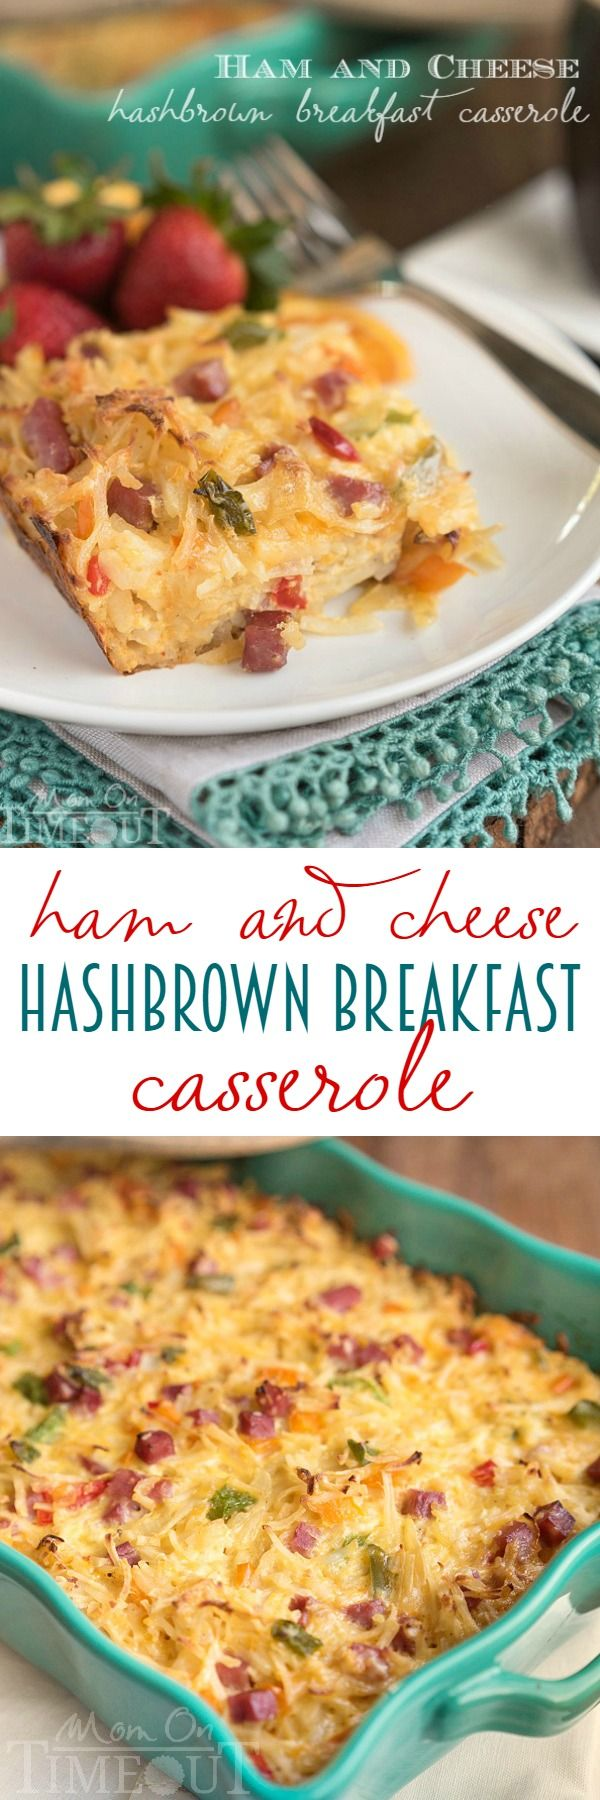 This Ham and Cheese Hash Brown Breakfast Casserole is the perfect way to use up leftover ham! Extra cheesy and delicious, this casserole takes just minutes to throw together and feeds a crowd! | MomOnTimeout.com: